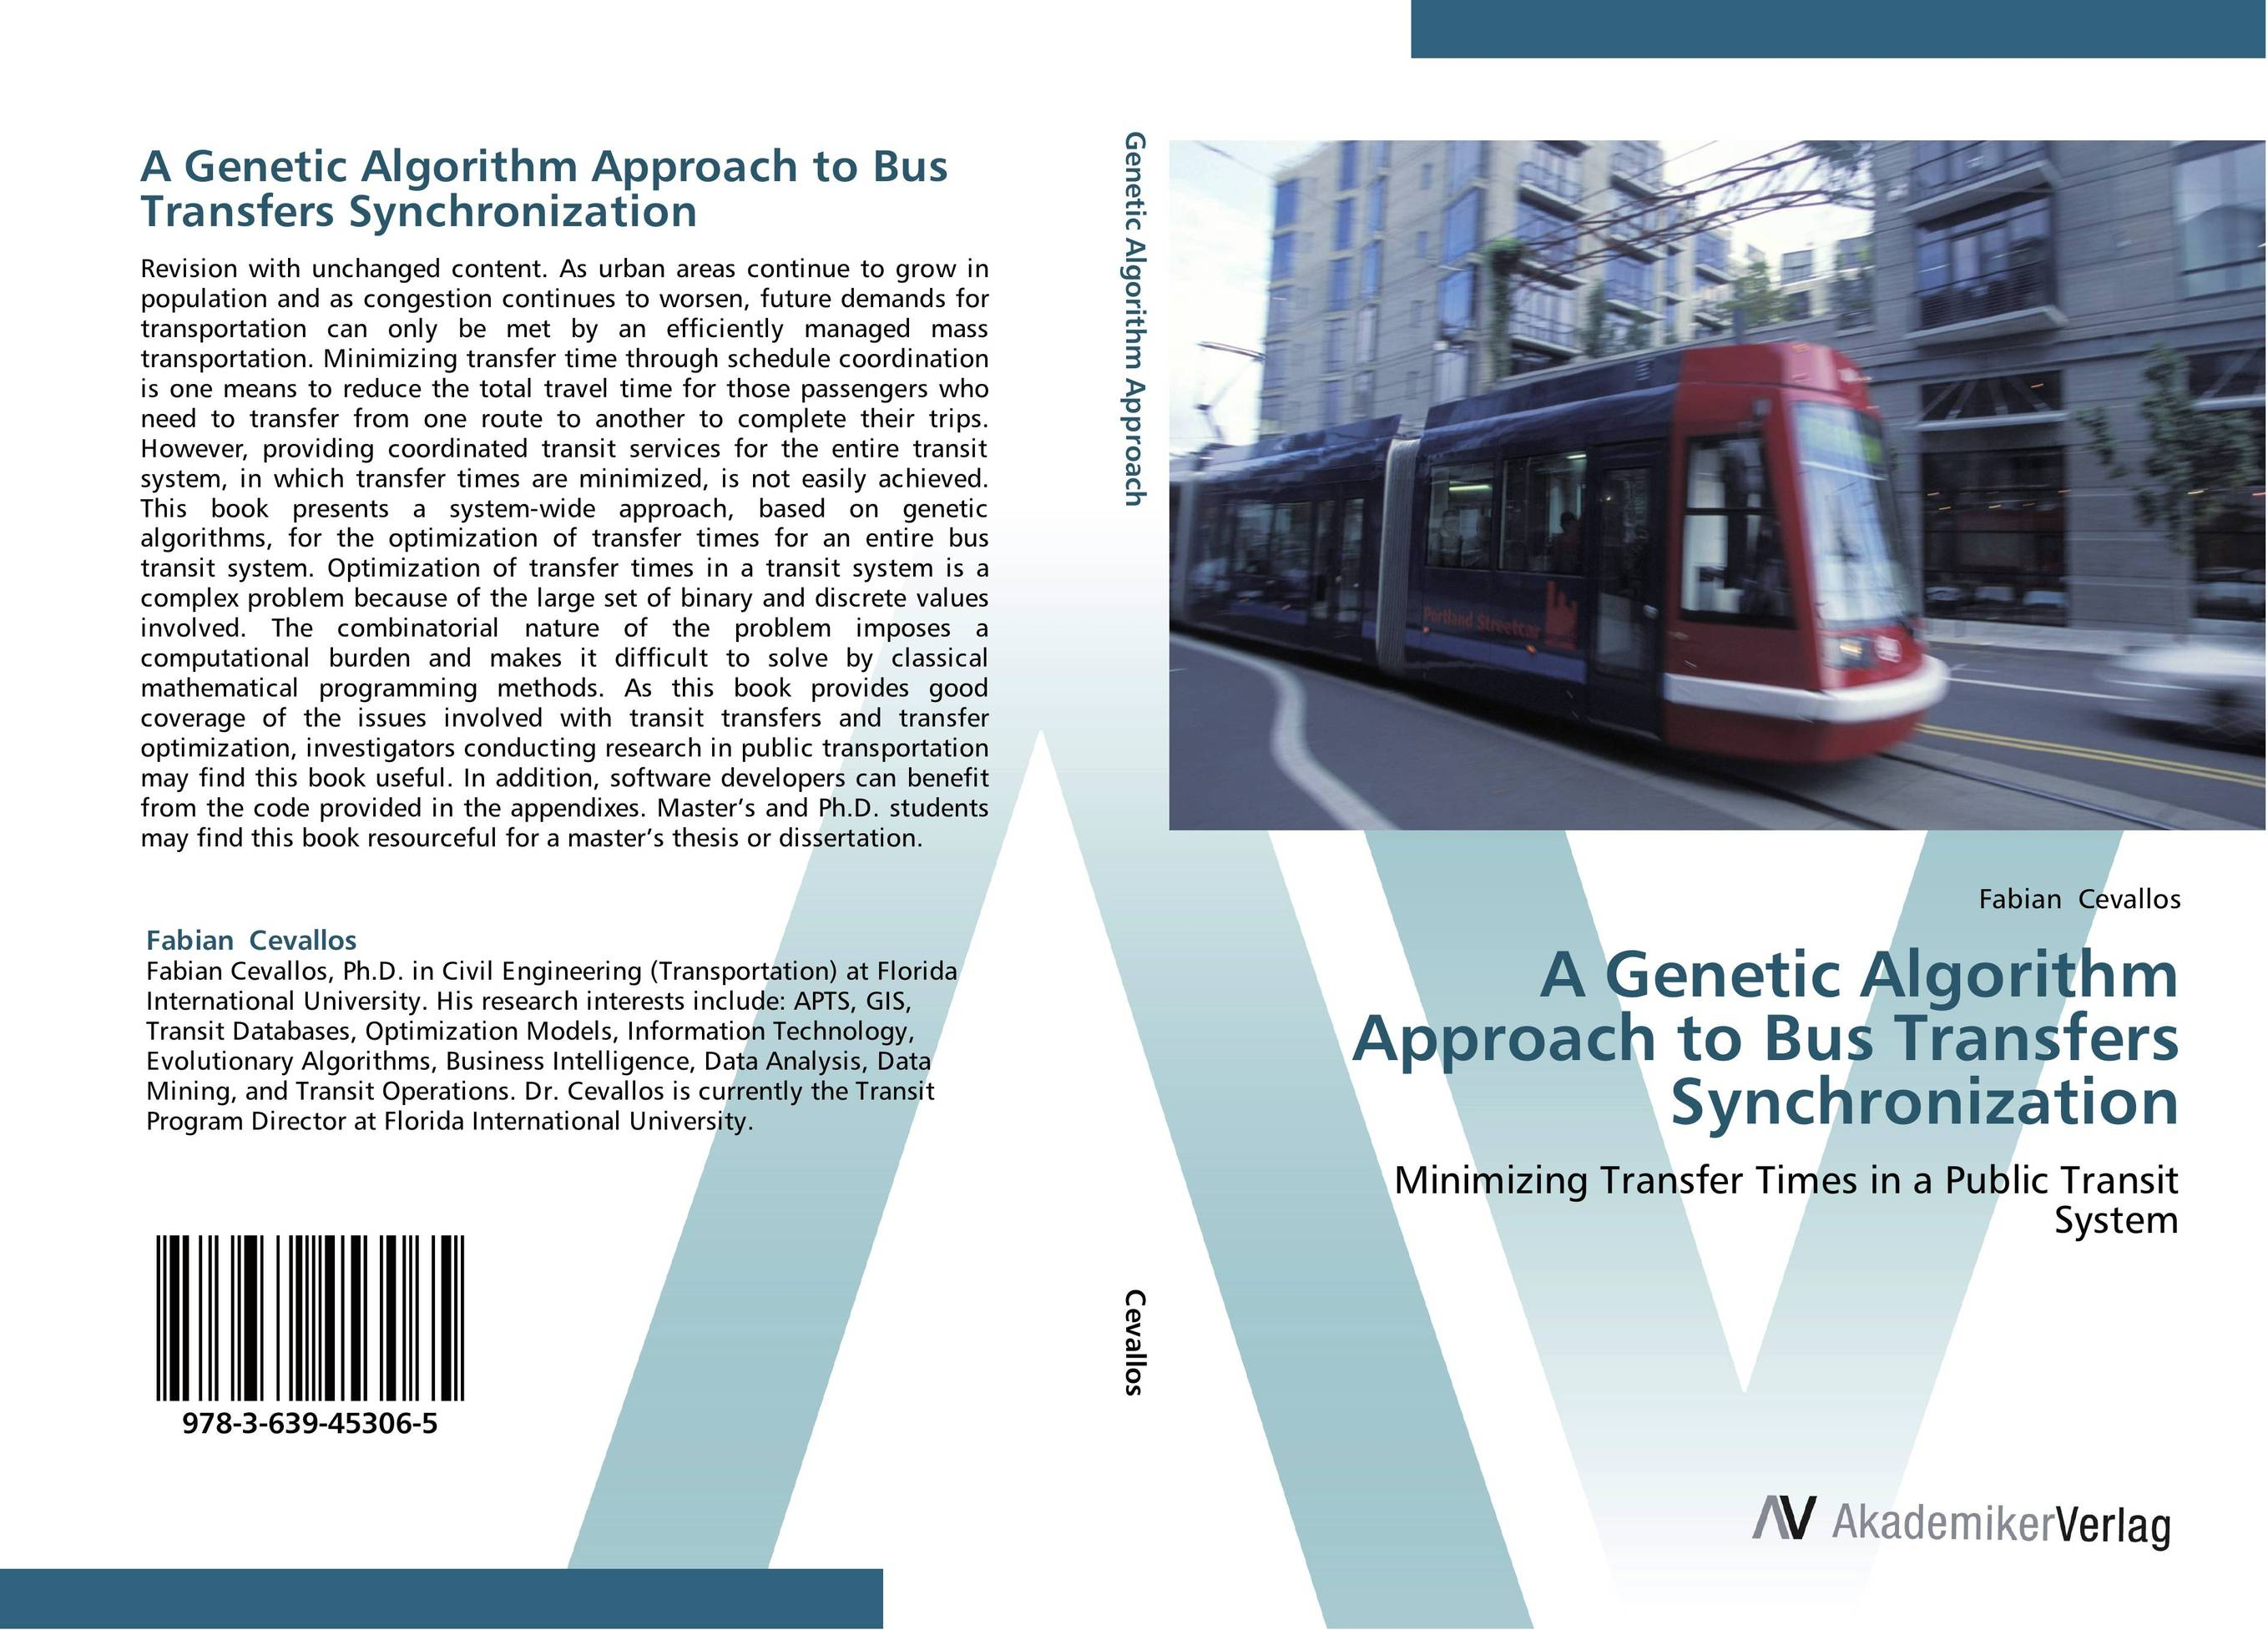 A Genetic Algorithm Approach to Bus Transfers Synchronization transit rights in petroleum transportation systems